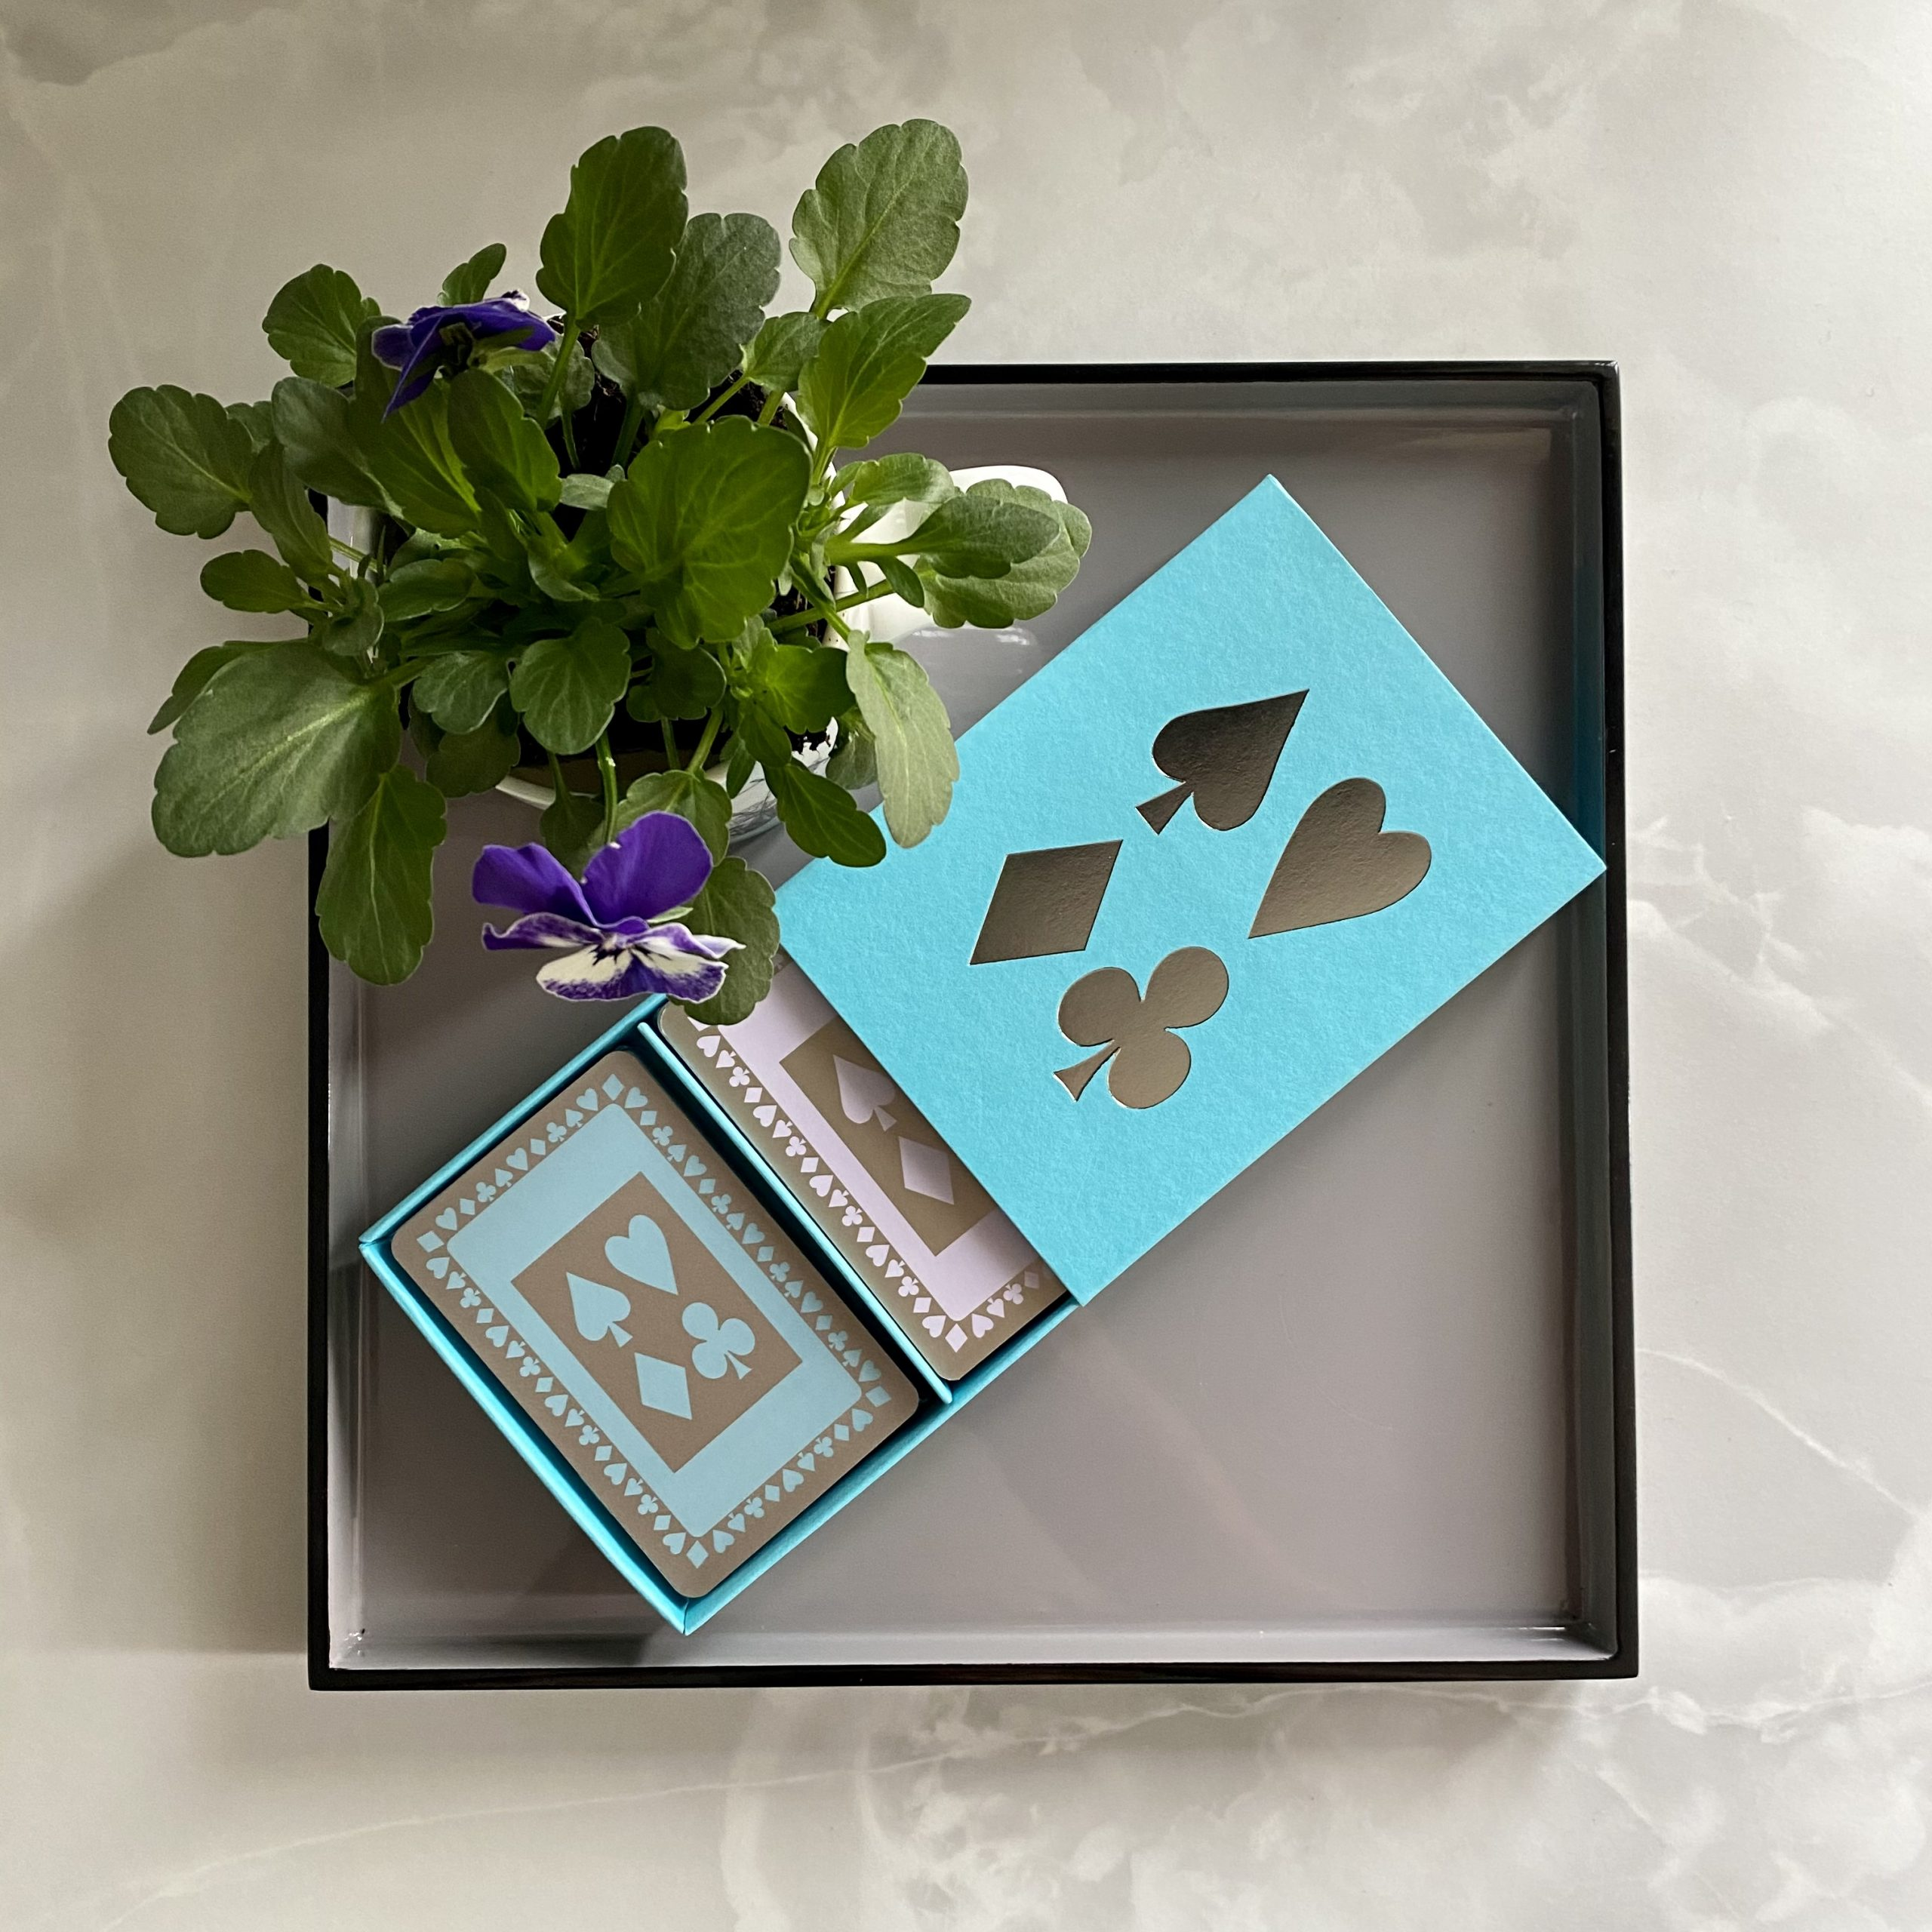 Boxed twin set of luxury playing cards